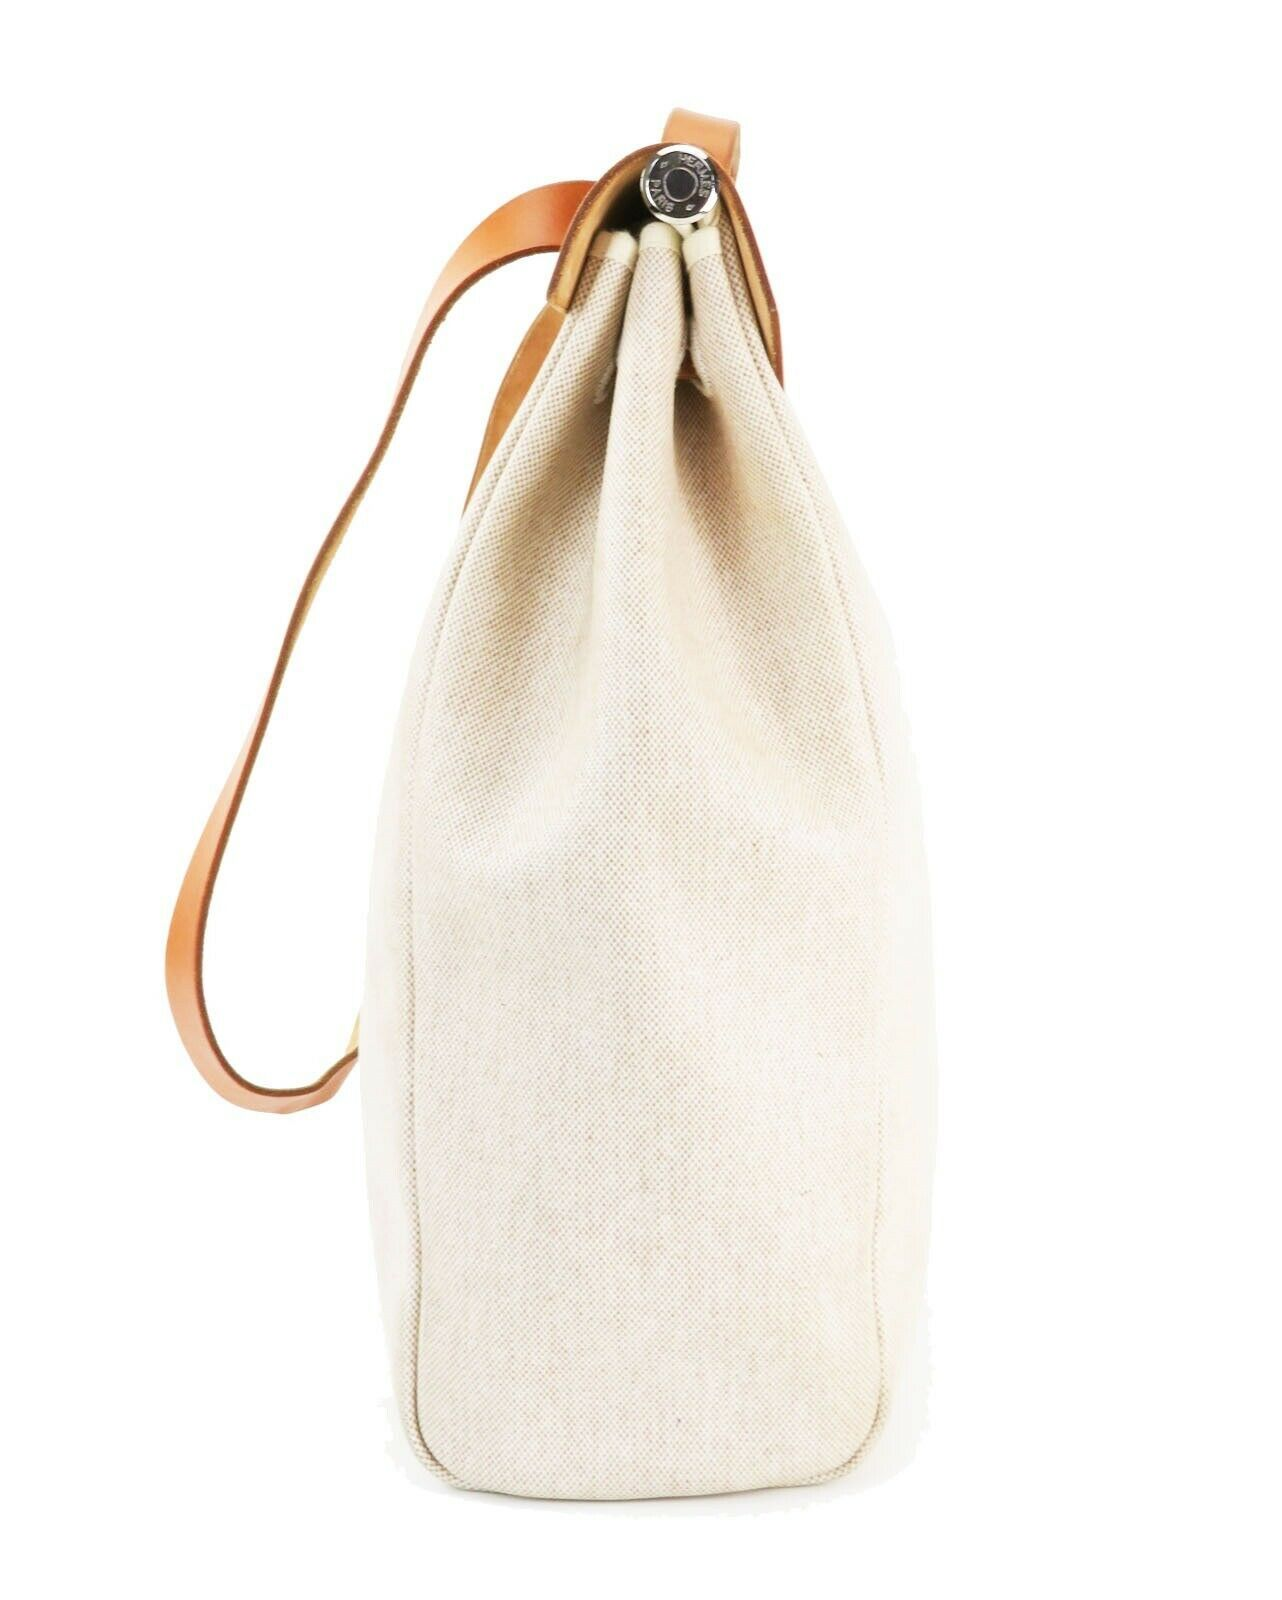 Auth HERMES Her Bag 2 in 1 Beige Canvas and Leather Hand Shoulder Bag #26110 image 5